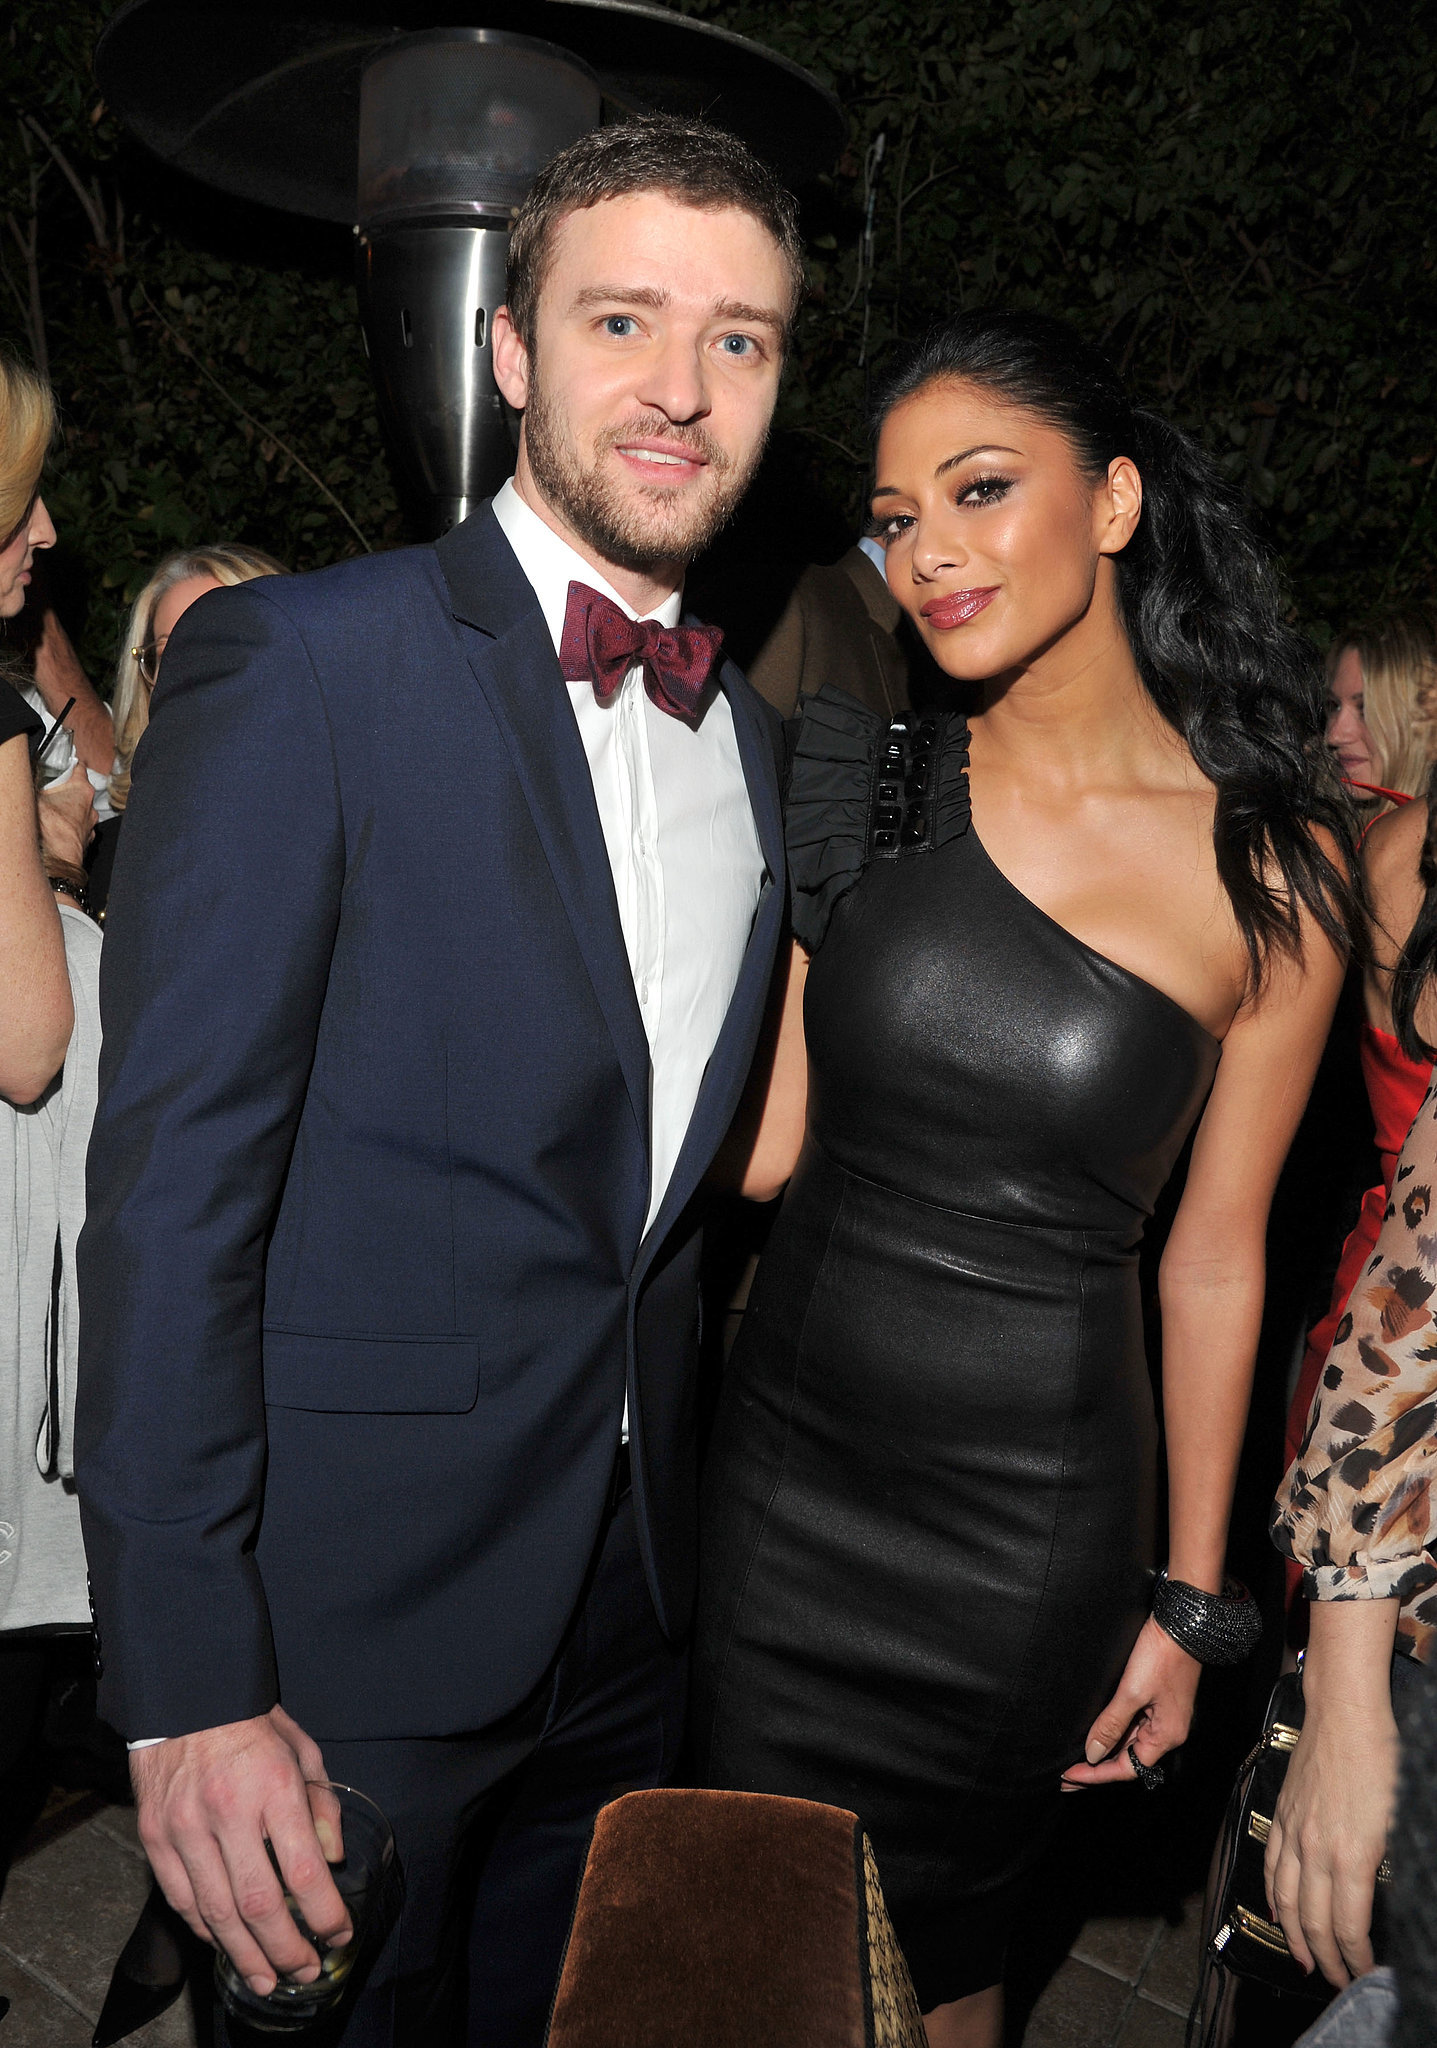 Justin, looking dapper in a bow tie, posed with Nicole Scherzinger at GQ's Men of the Year party in 2011.